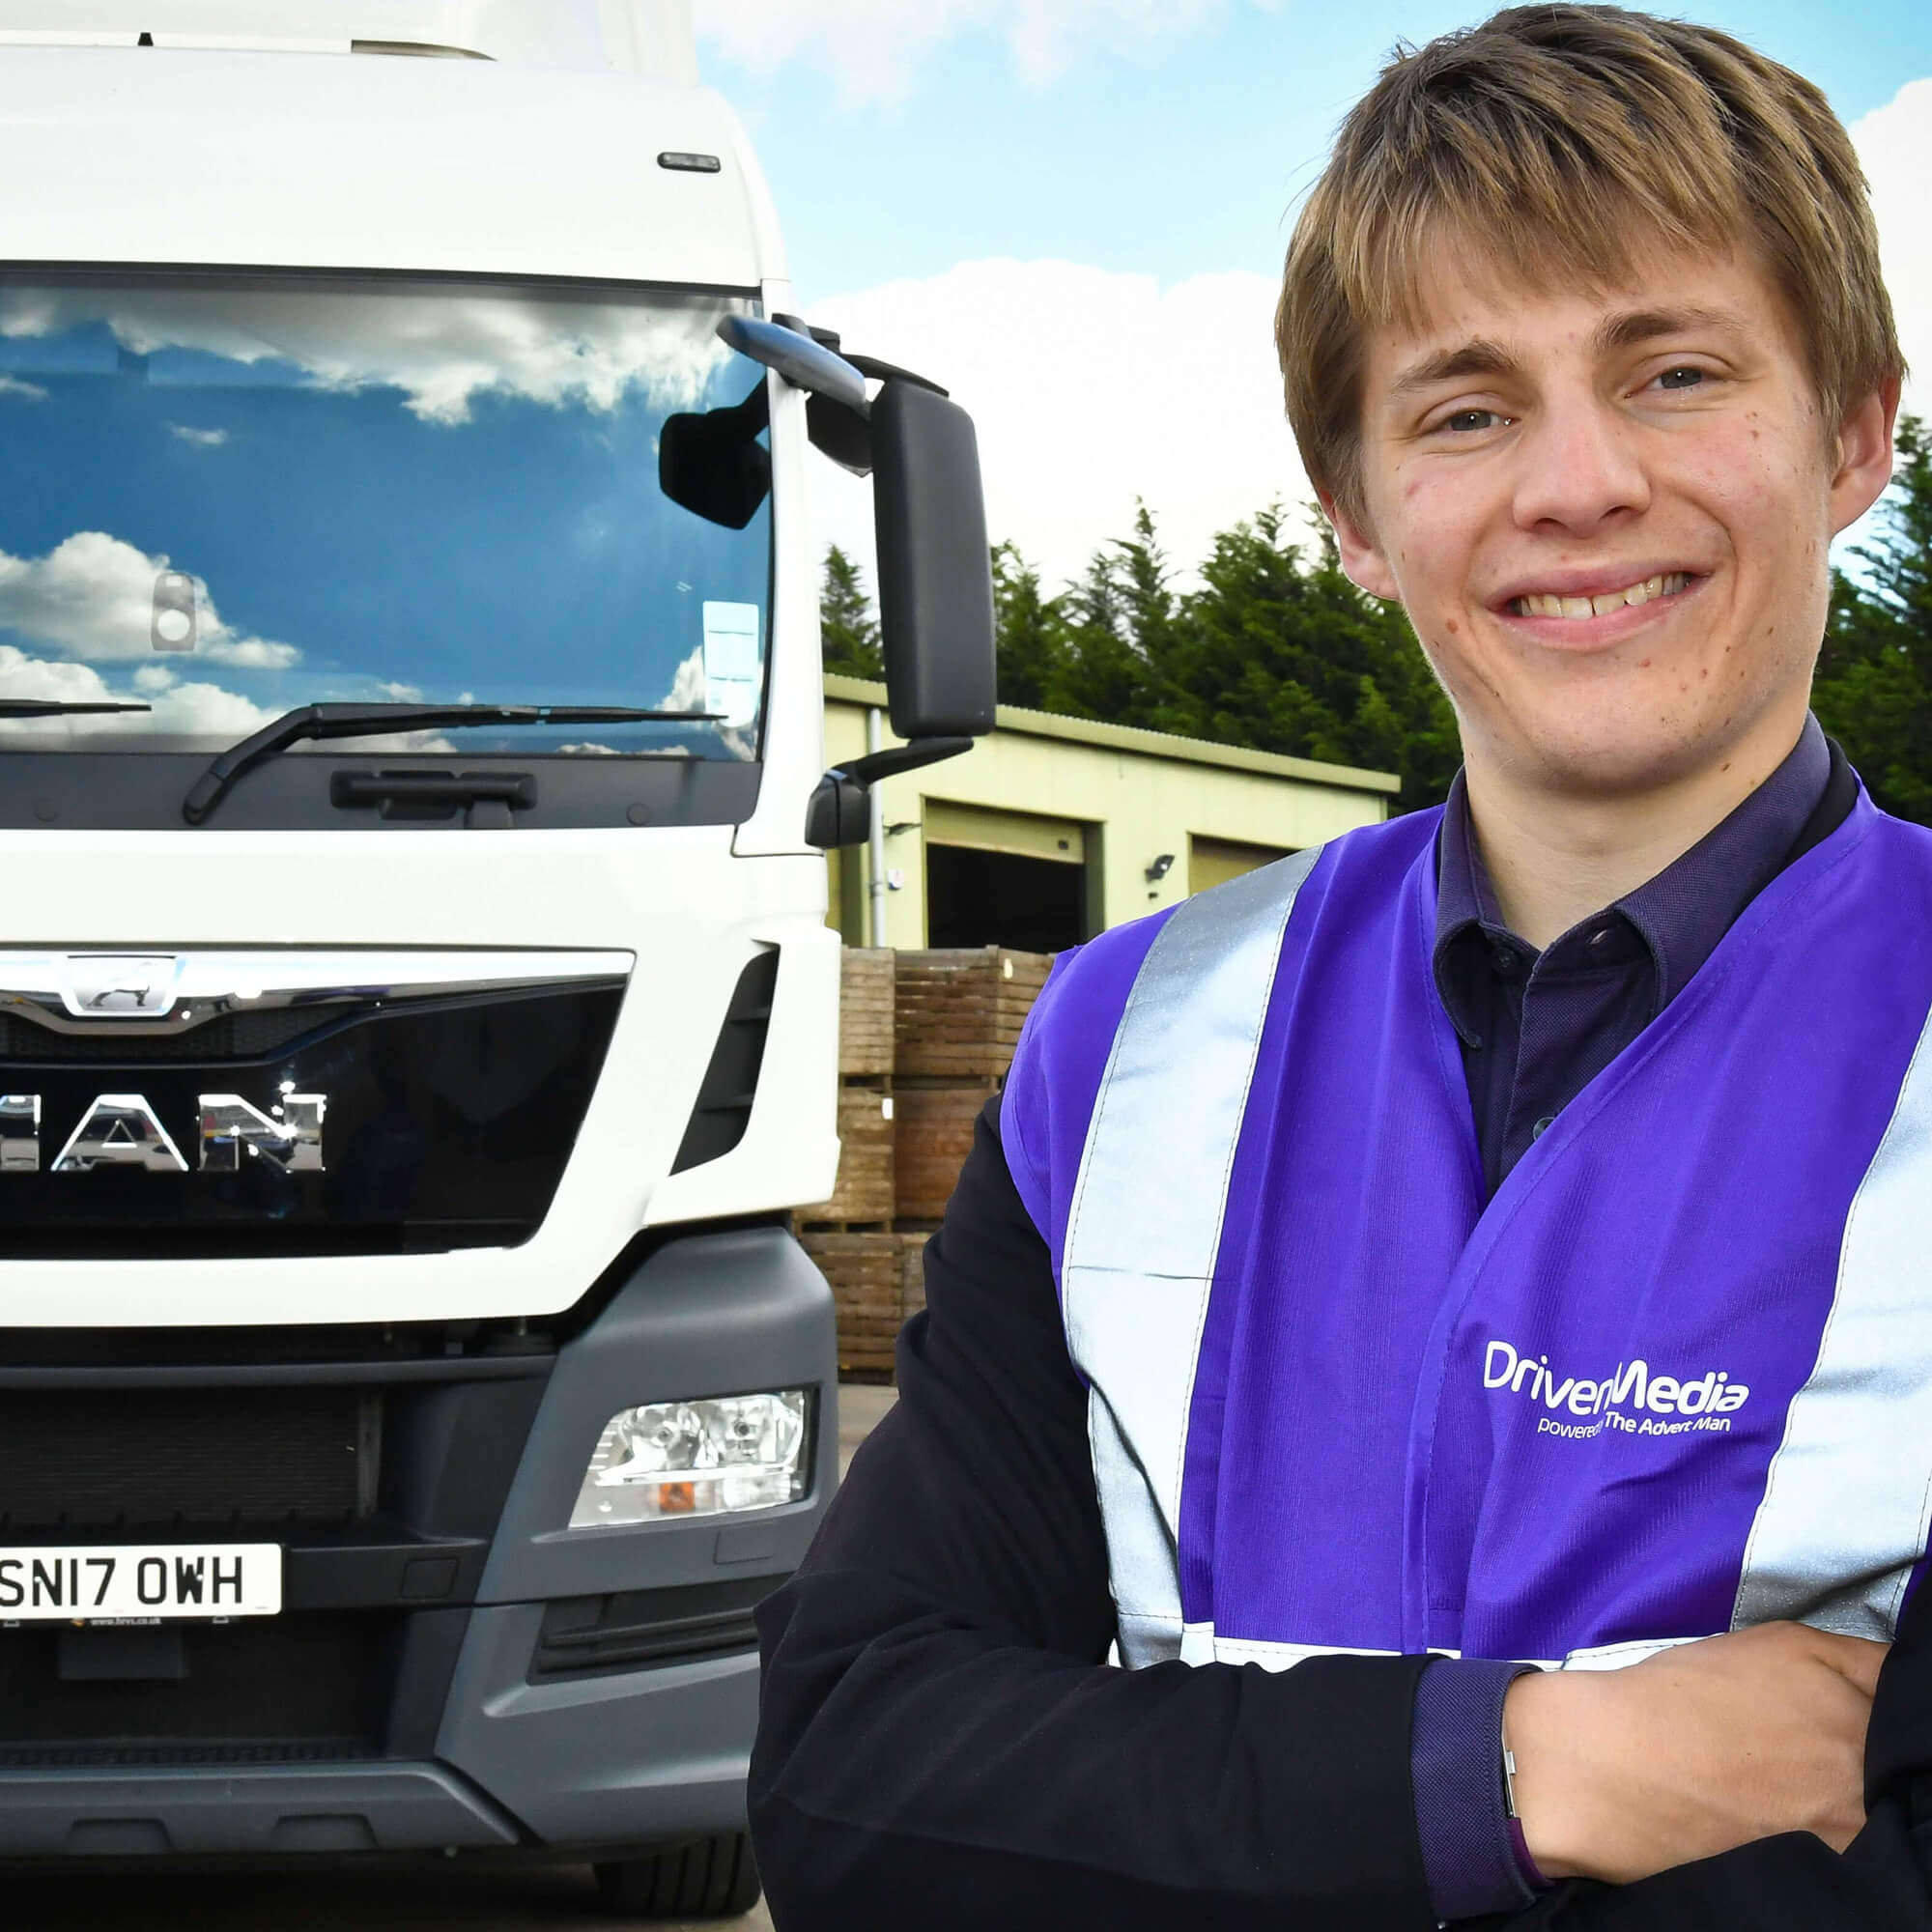 Ed standing next to a truck with arms crossed.